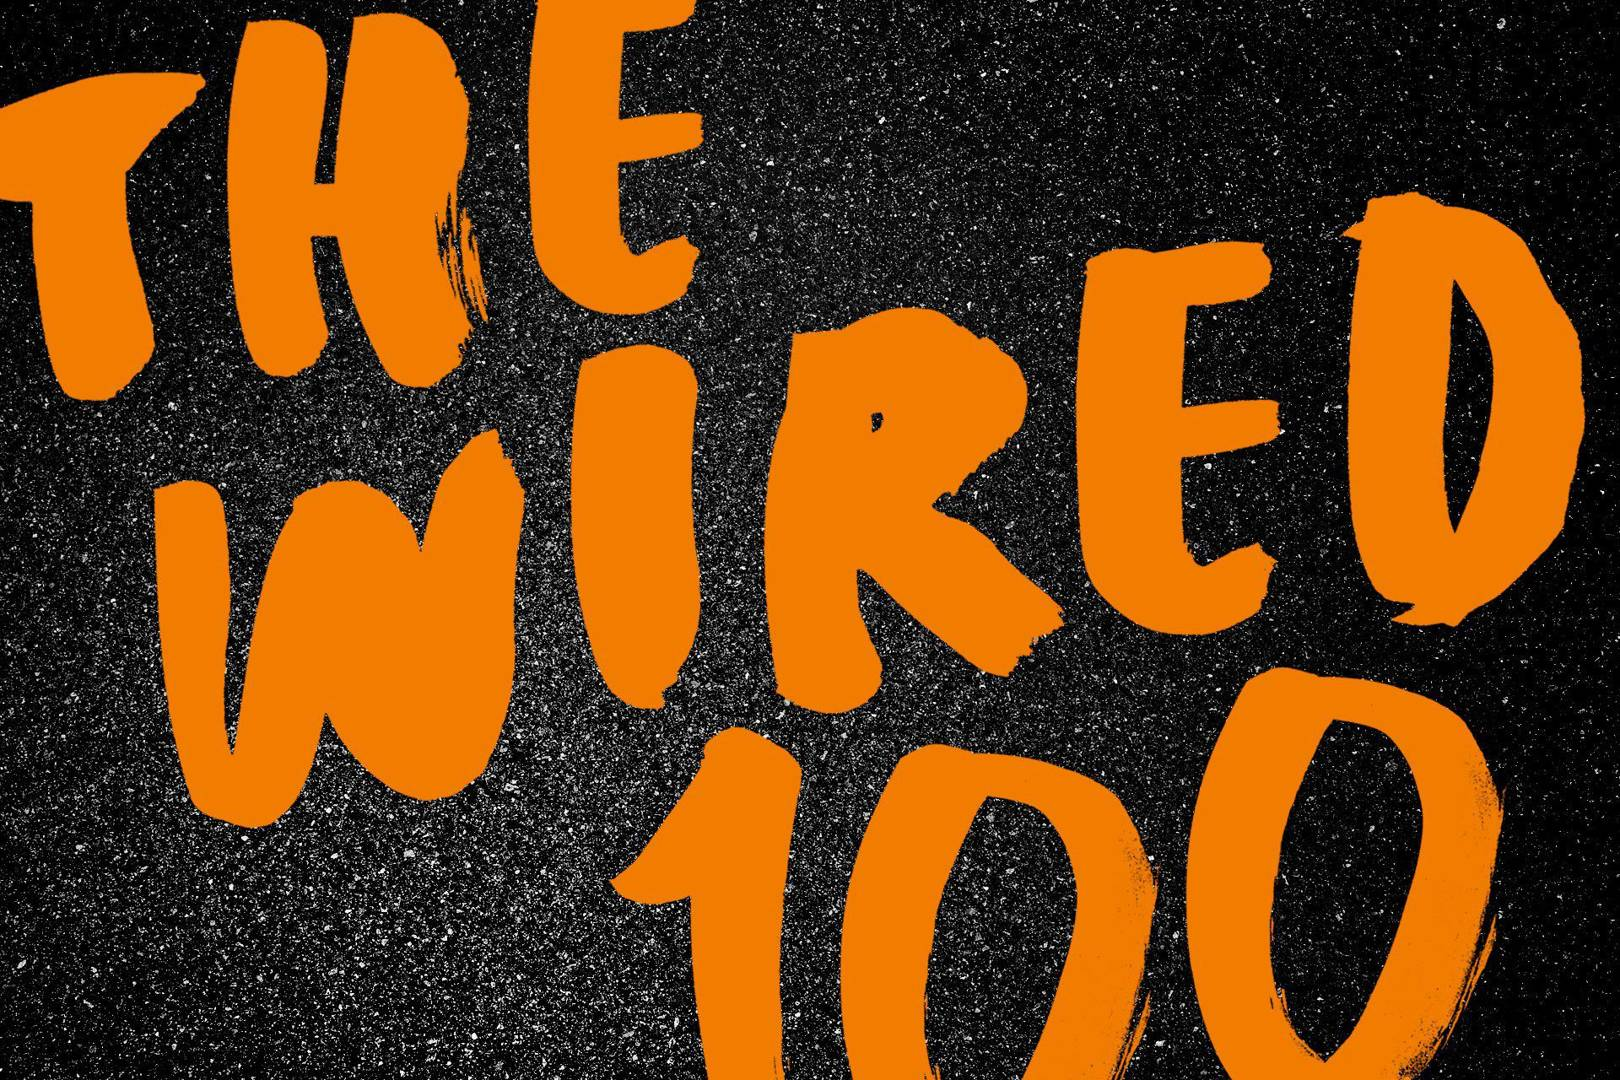 WIRED 100 countdown: Every year we round up the most influential ...